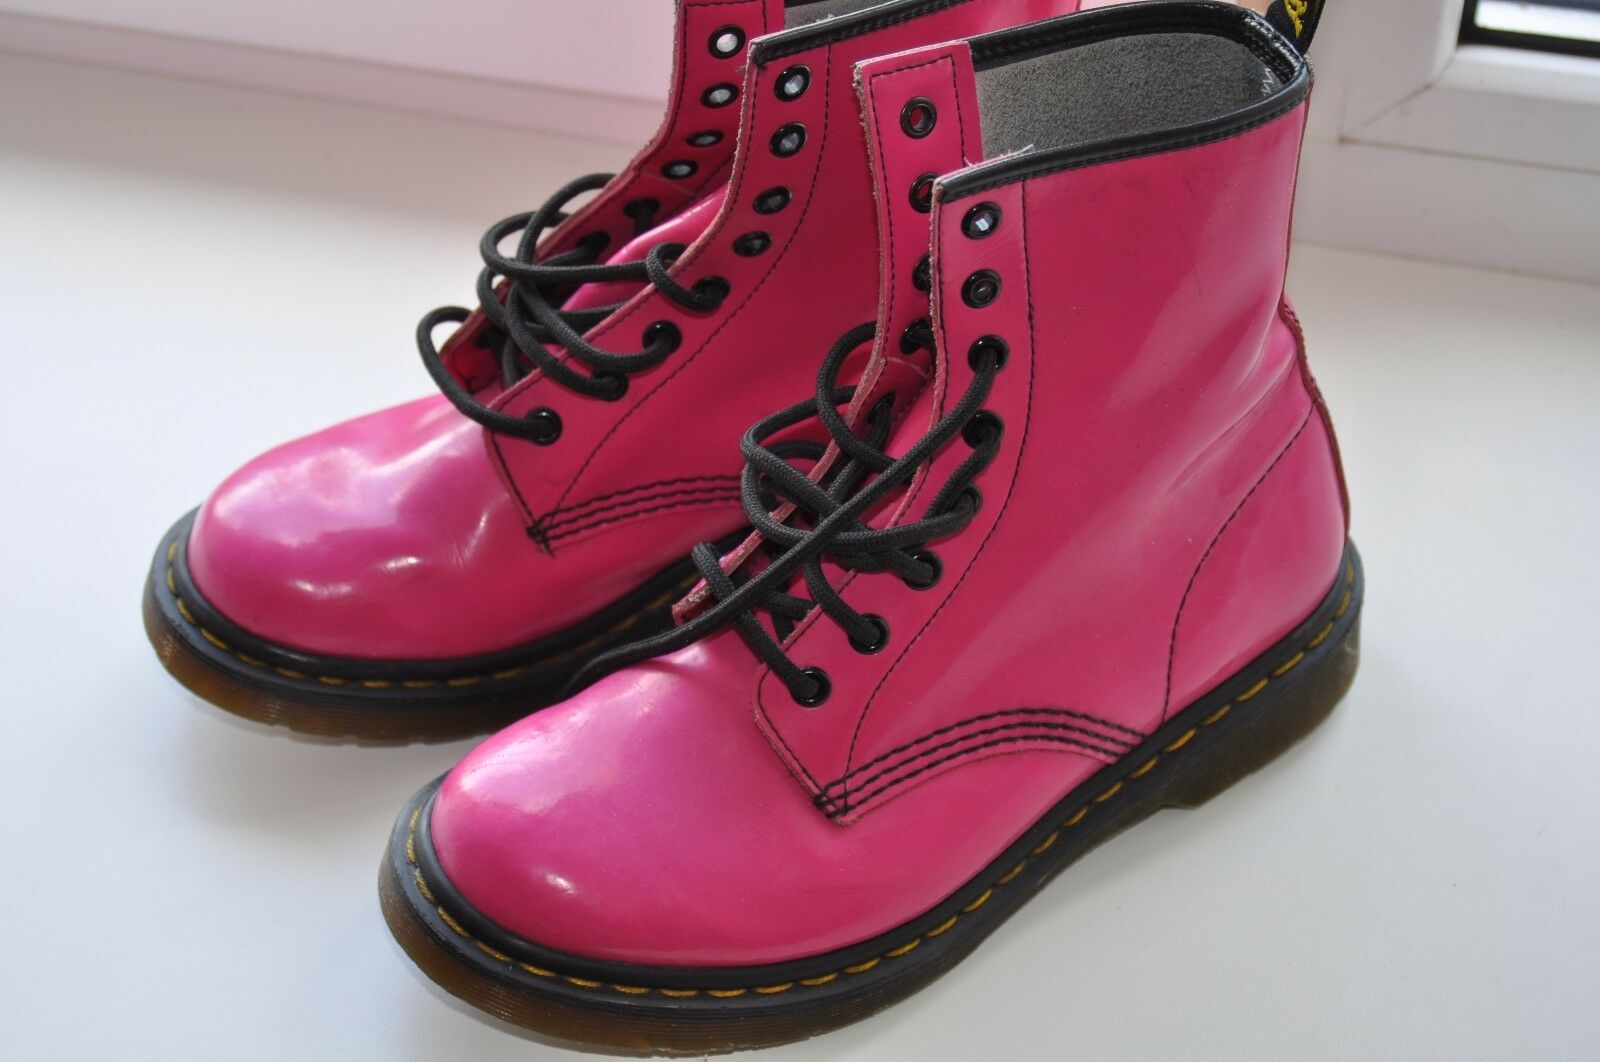 Dr Martens 1460 Womens Pink Patent Leather Size EU38/US7 Lace Up